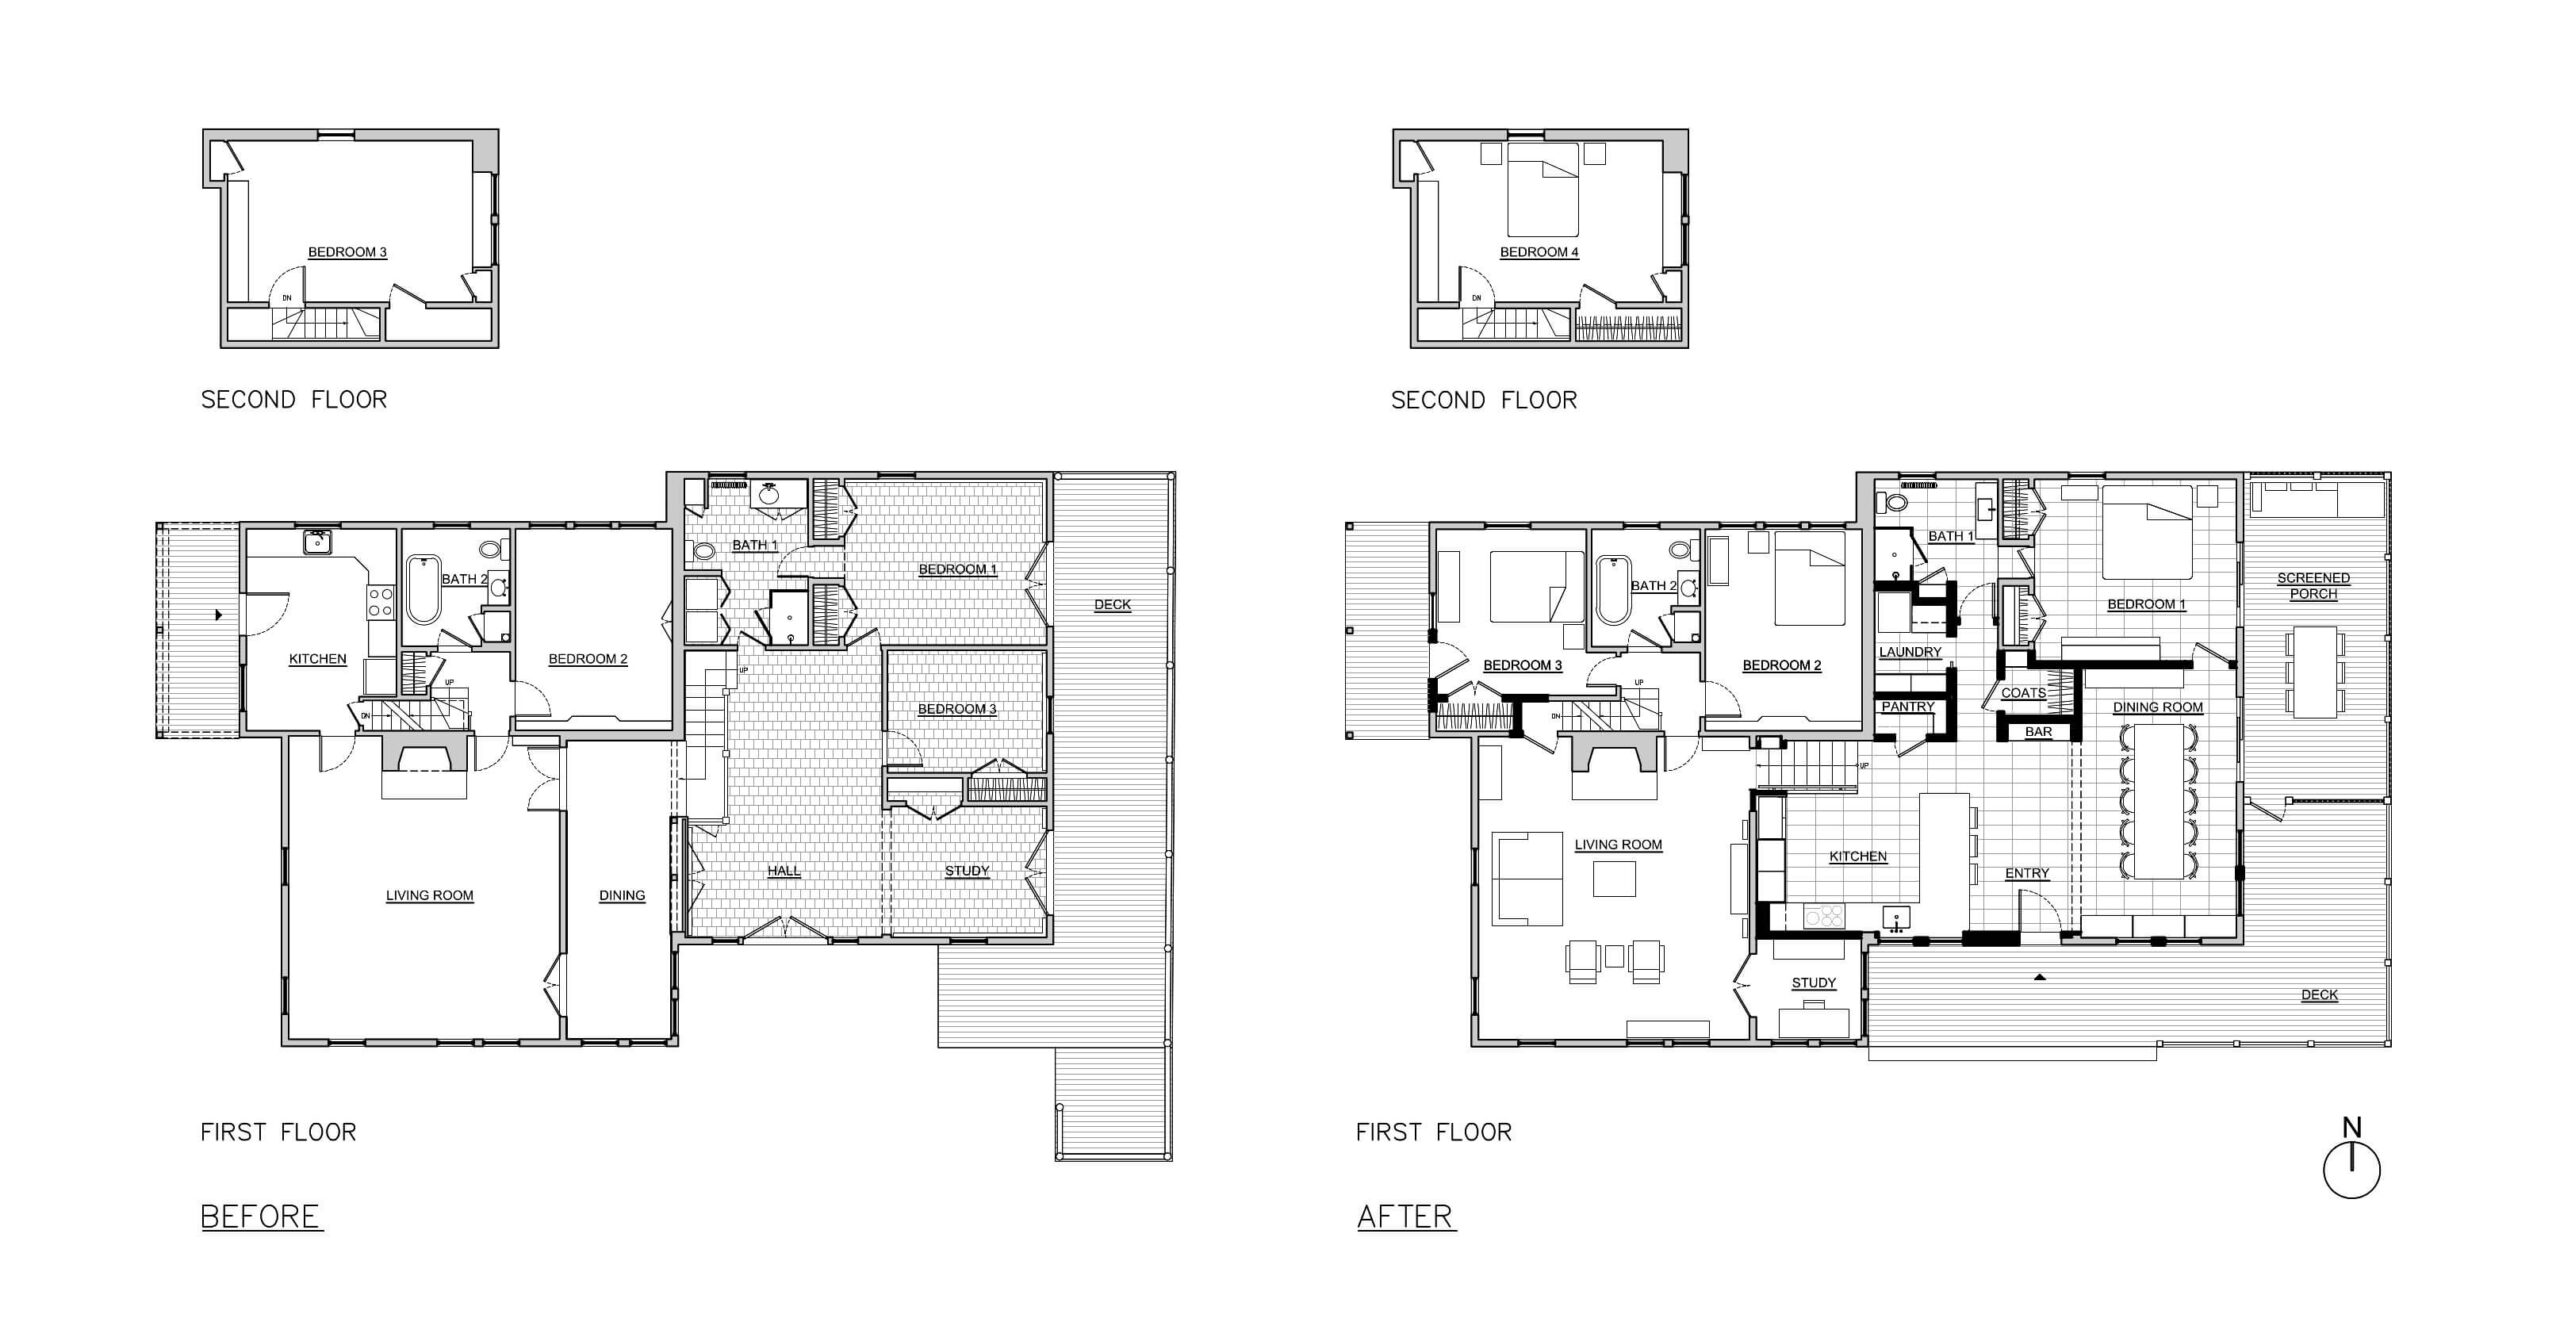 before and after floor plans of Connecticut house renovation